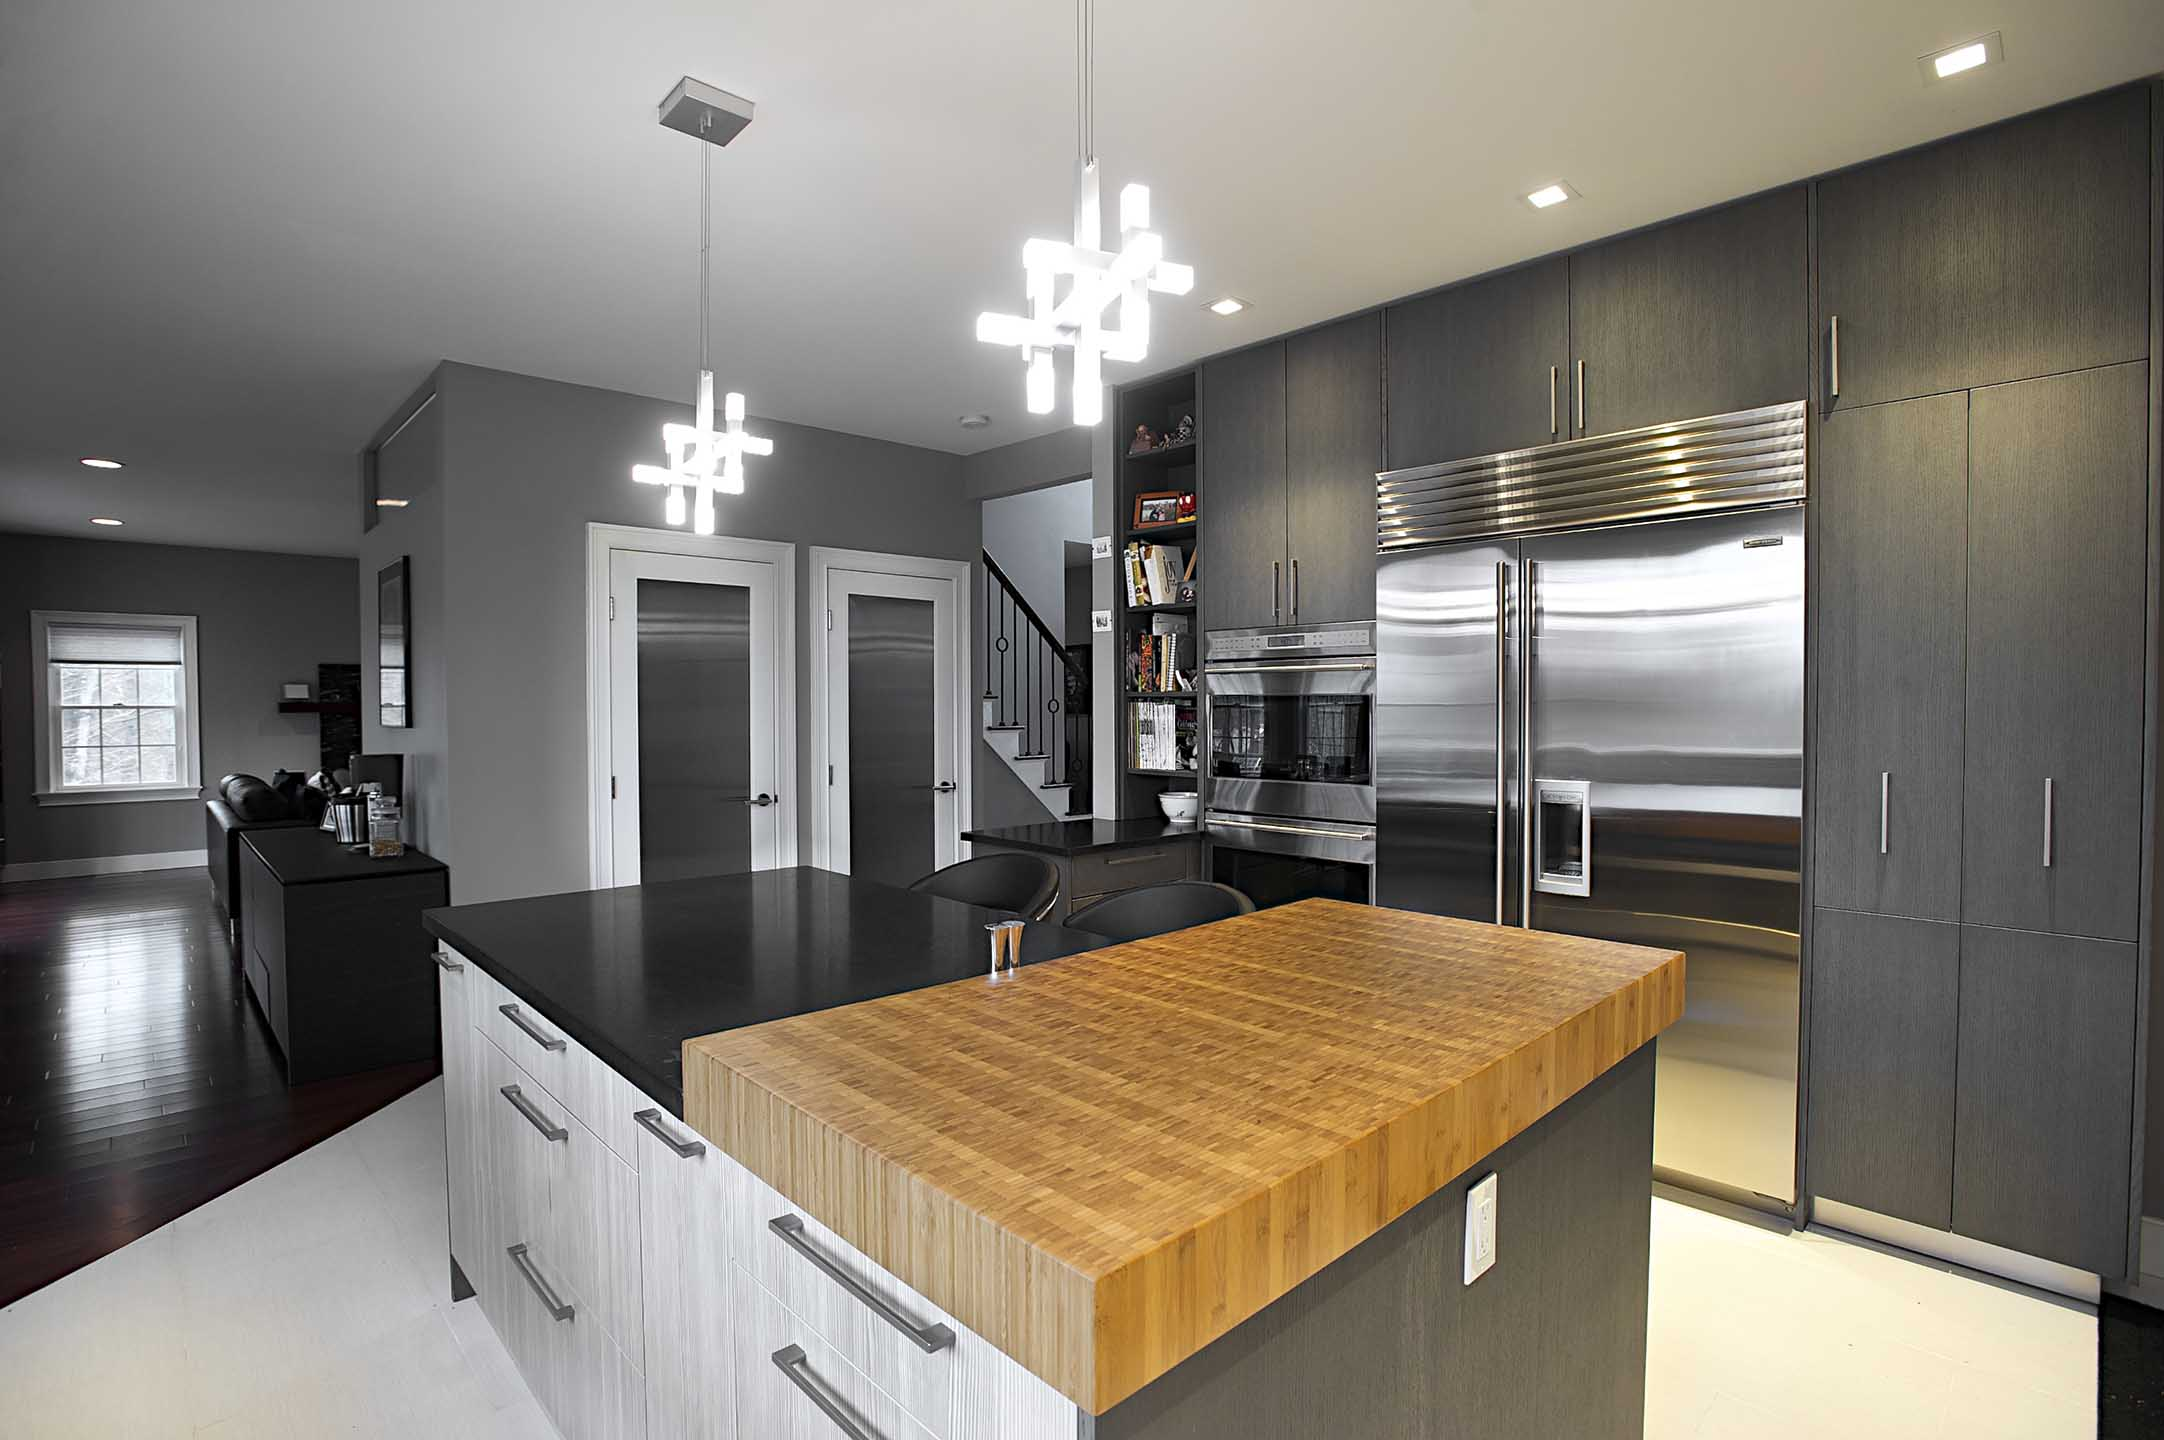 joan bigg kitchen designer fairfield county ct contemporary kitchen with grothouse butcher block rockland county ny